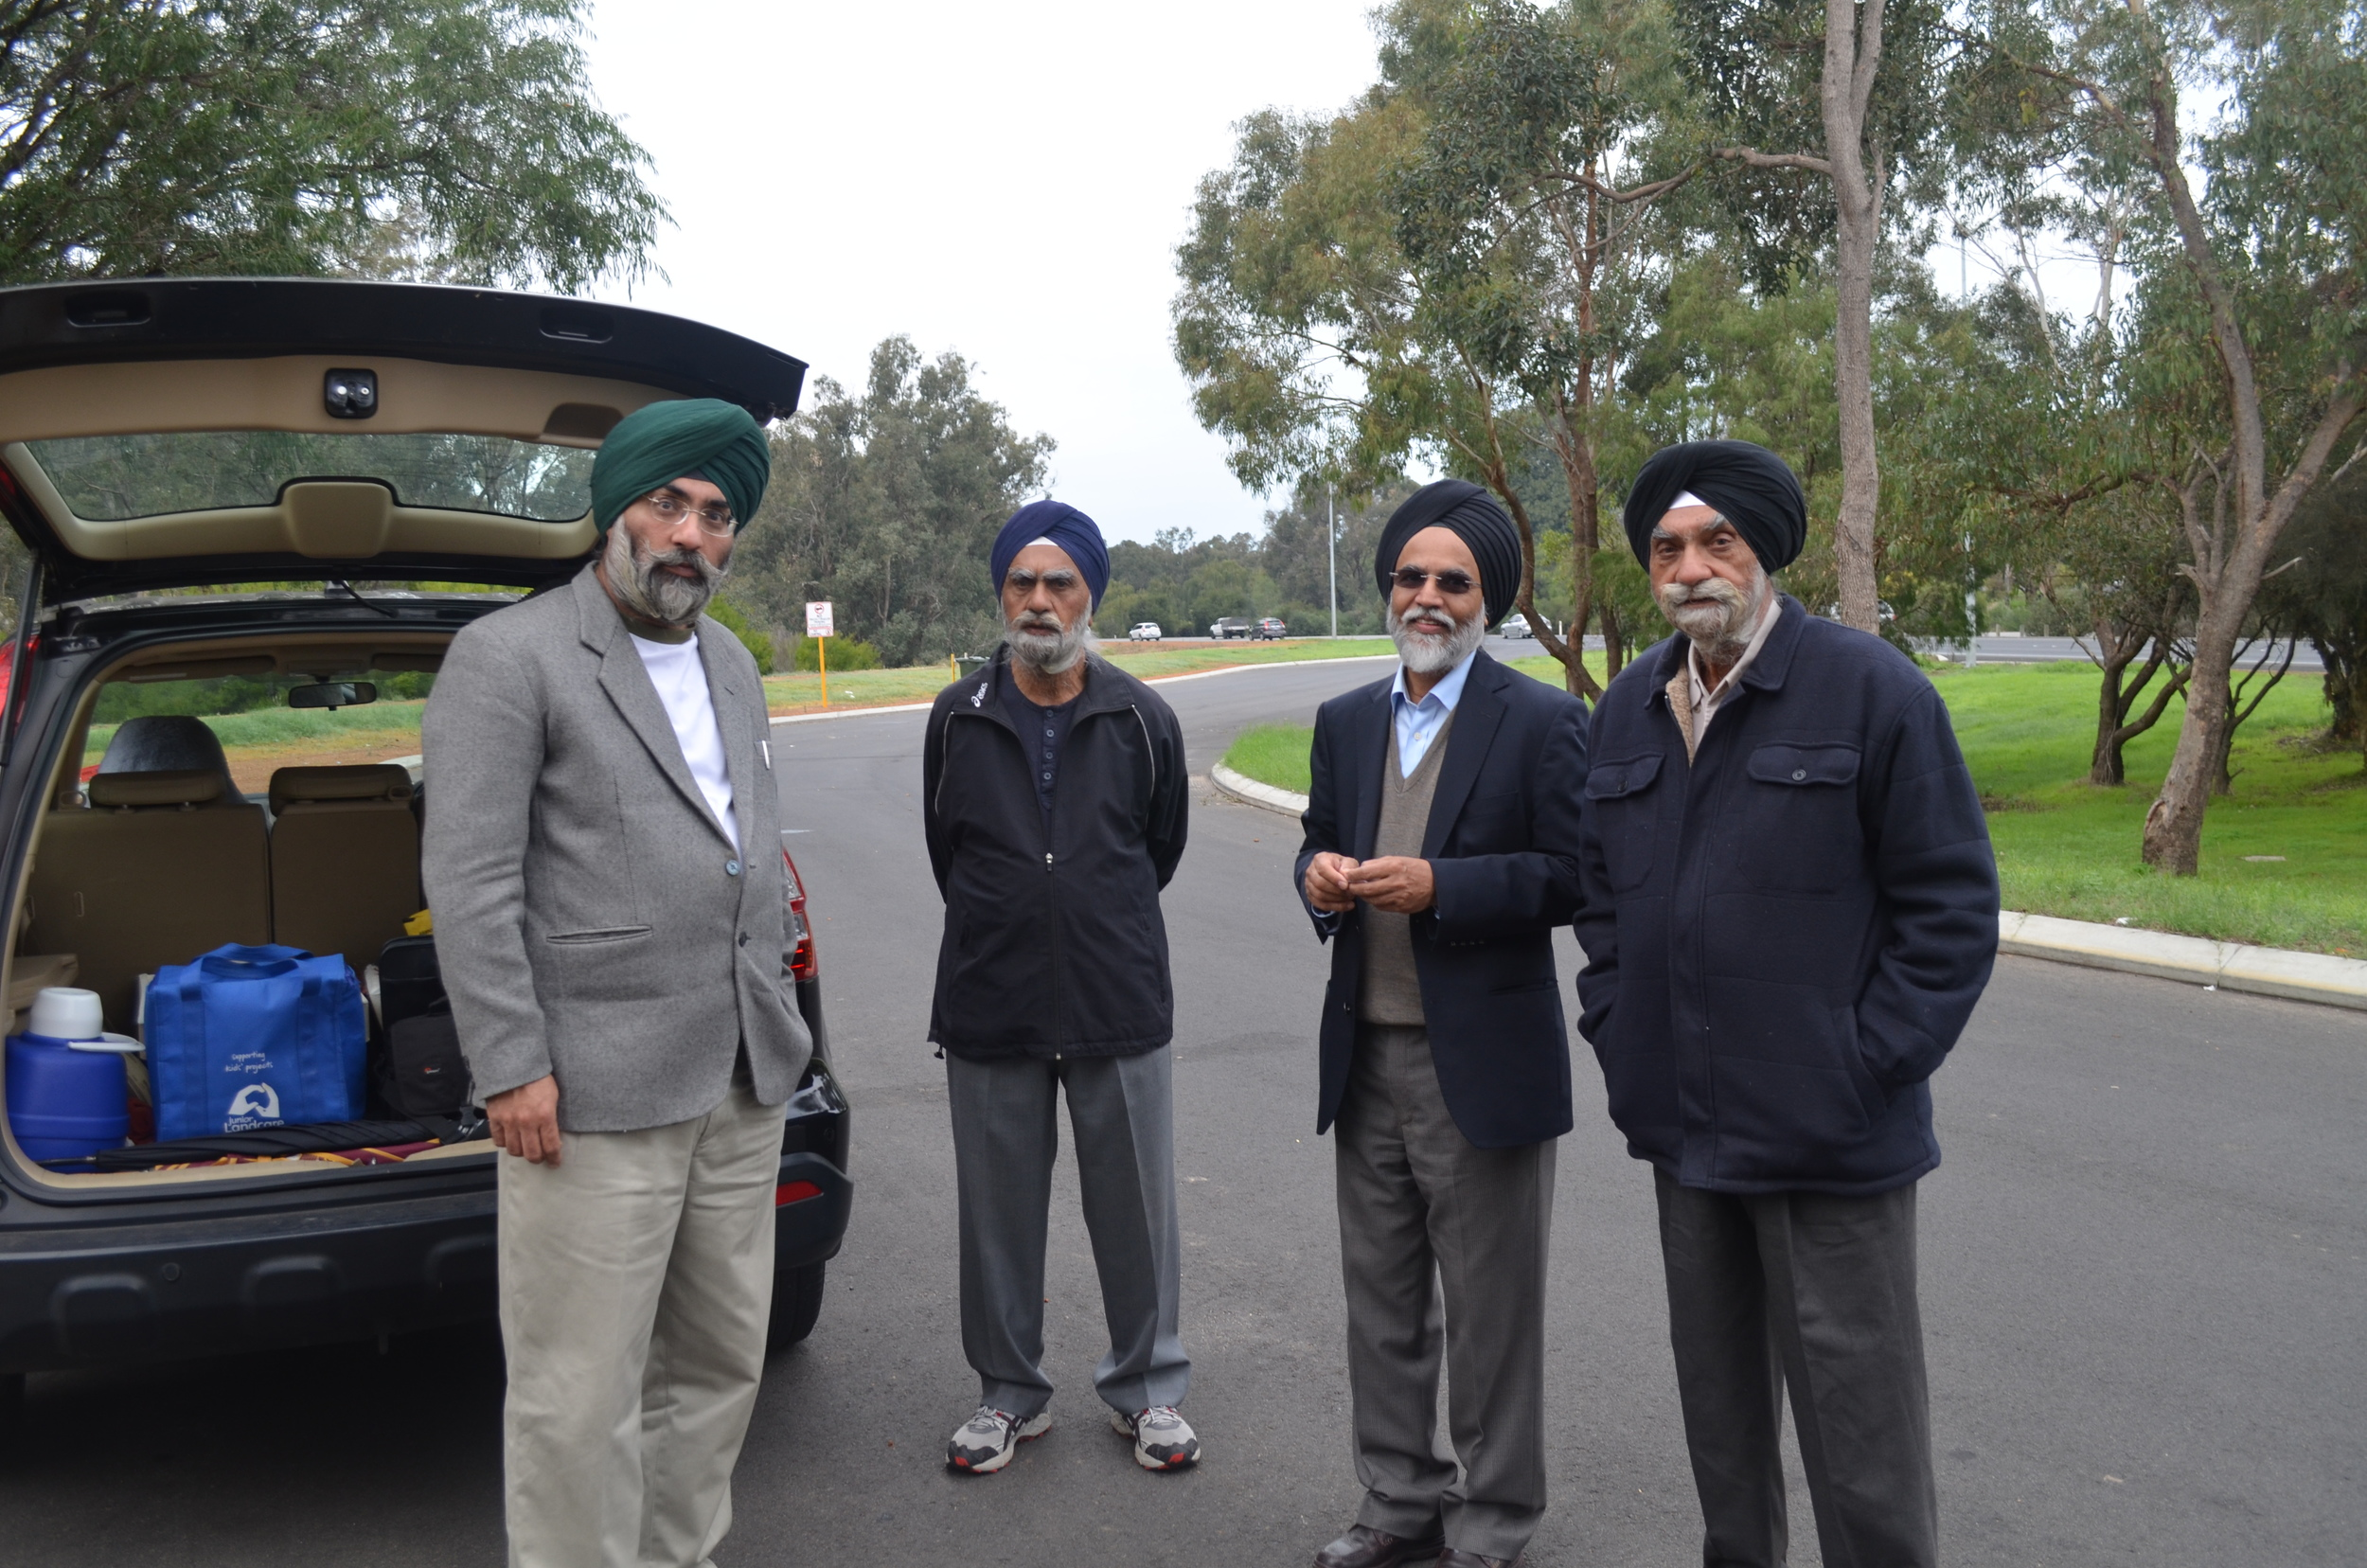 Members of ASHA and the Sikh community (from the left, Tarunpreet Singh, Dr Amarjeet Singh, Amarjit Singh Pabla, Paramjit Singh)